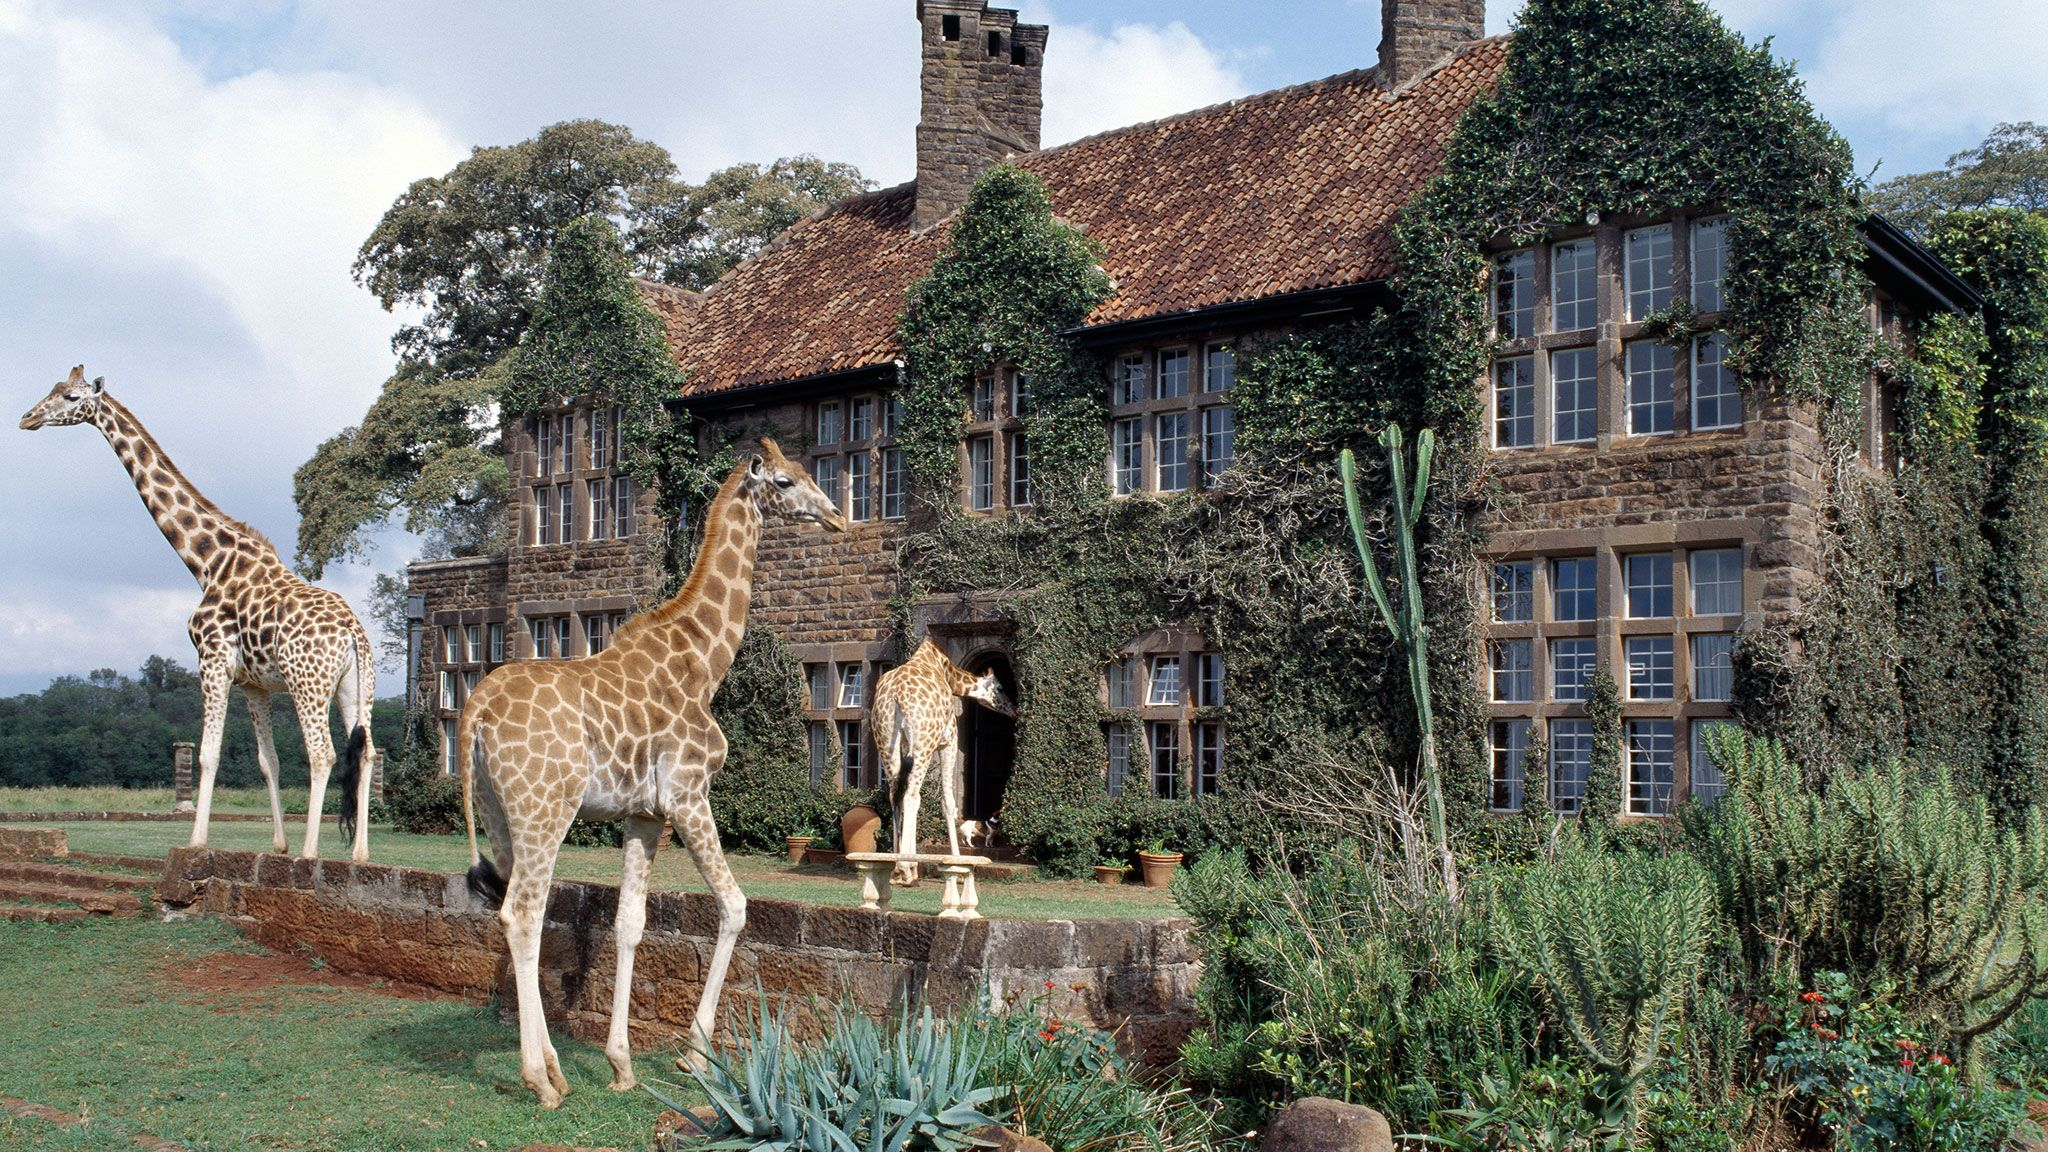 Condé Nast Traveler Gold List 2015: Top Hotels in the World | No matter how many safaris you've been on, there is nothing quite as wonderful and unforgettable as having breakfast or tea with giraffes at the Giraffe Manor, in Nairobi. A stunning turn-of-the-century stone mansion with ten rooms, it is also home to half a dozen friendly giraffes that poke their long necks into the large windows as guests are having breakfast and join them in the front garden for late-afternoon tea.